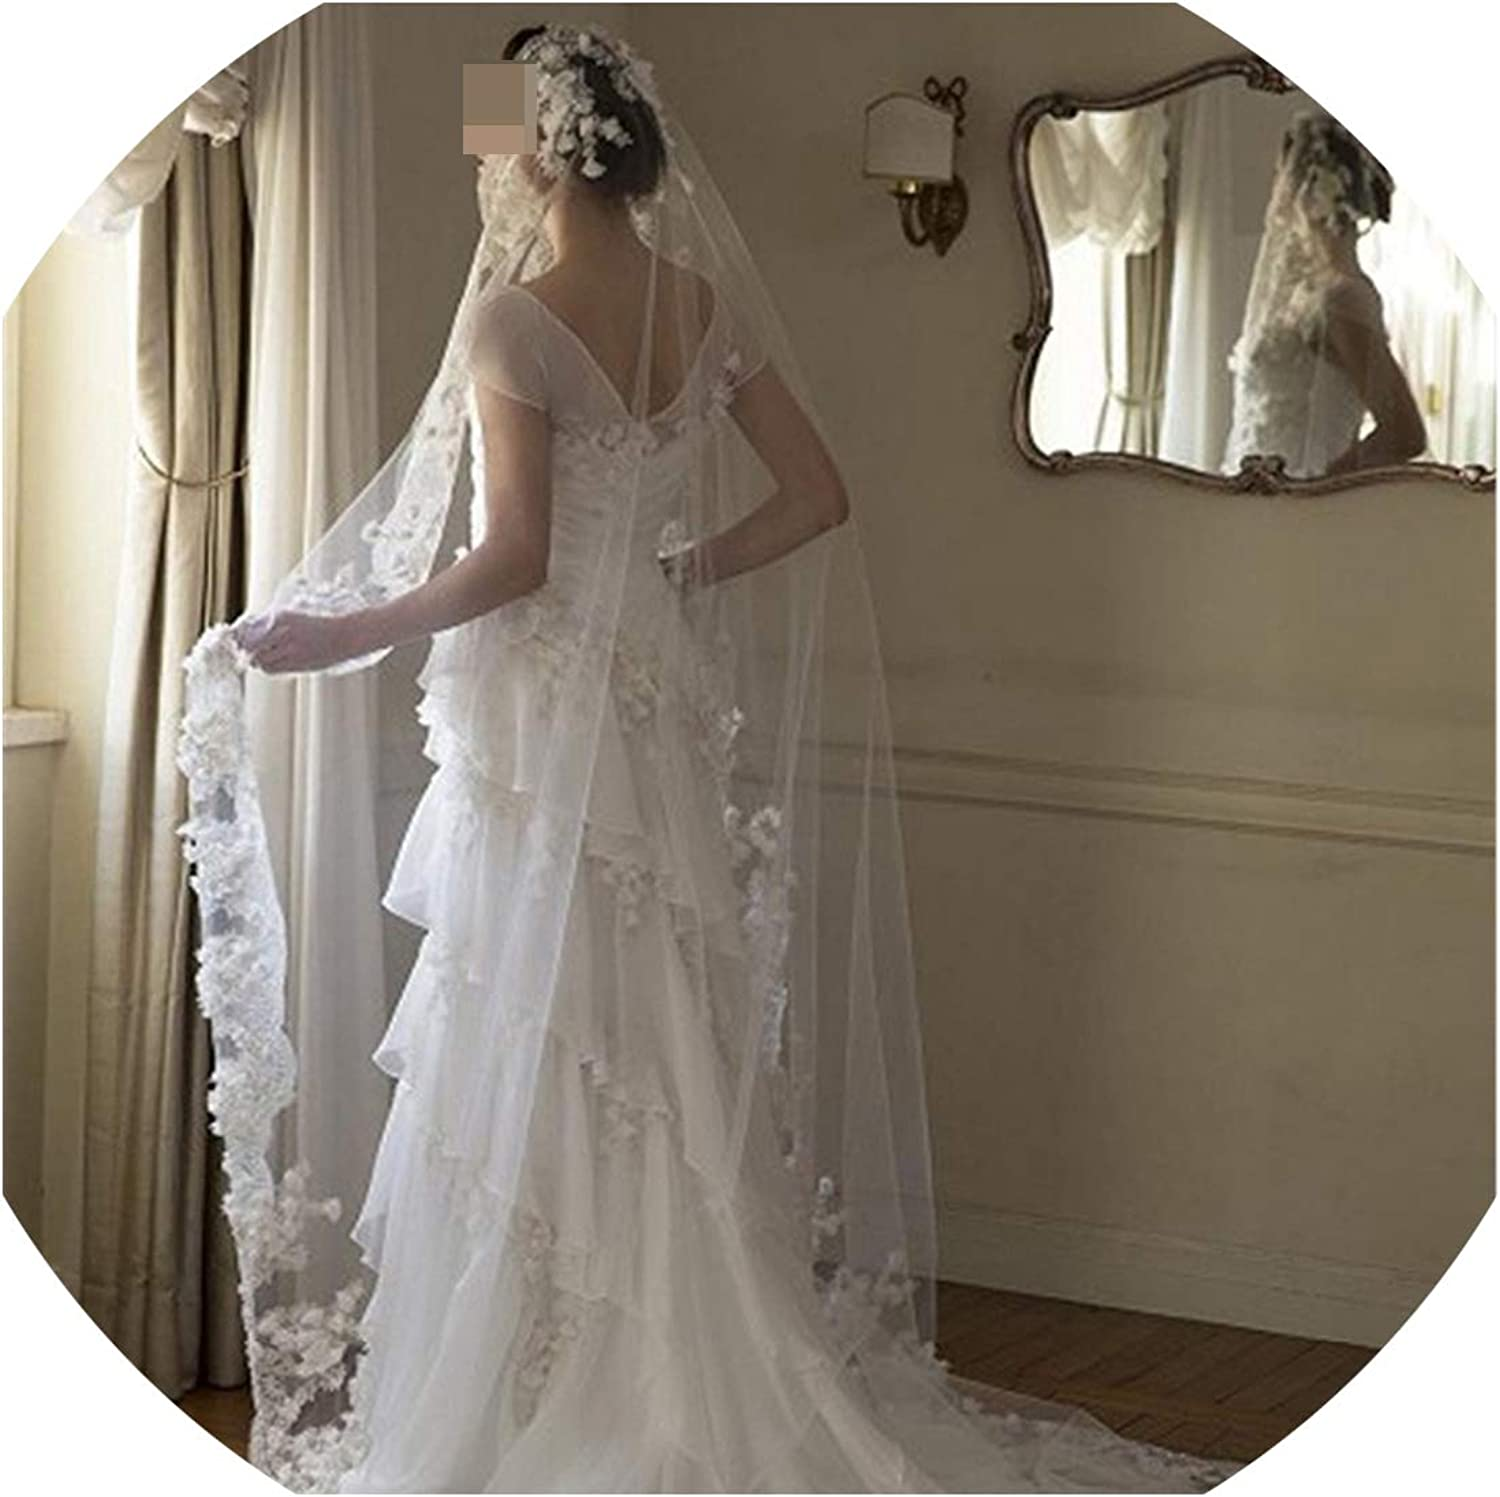 Cathedral Length Flowers Lace Edge Wedding Bridal Veil With Comb Wedding Accessories EE909,White,300cm